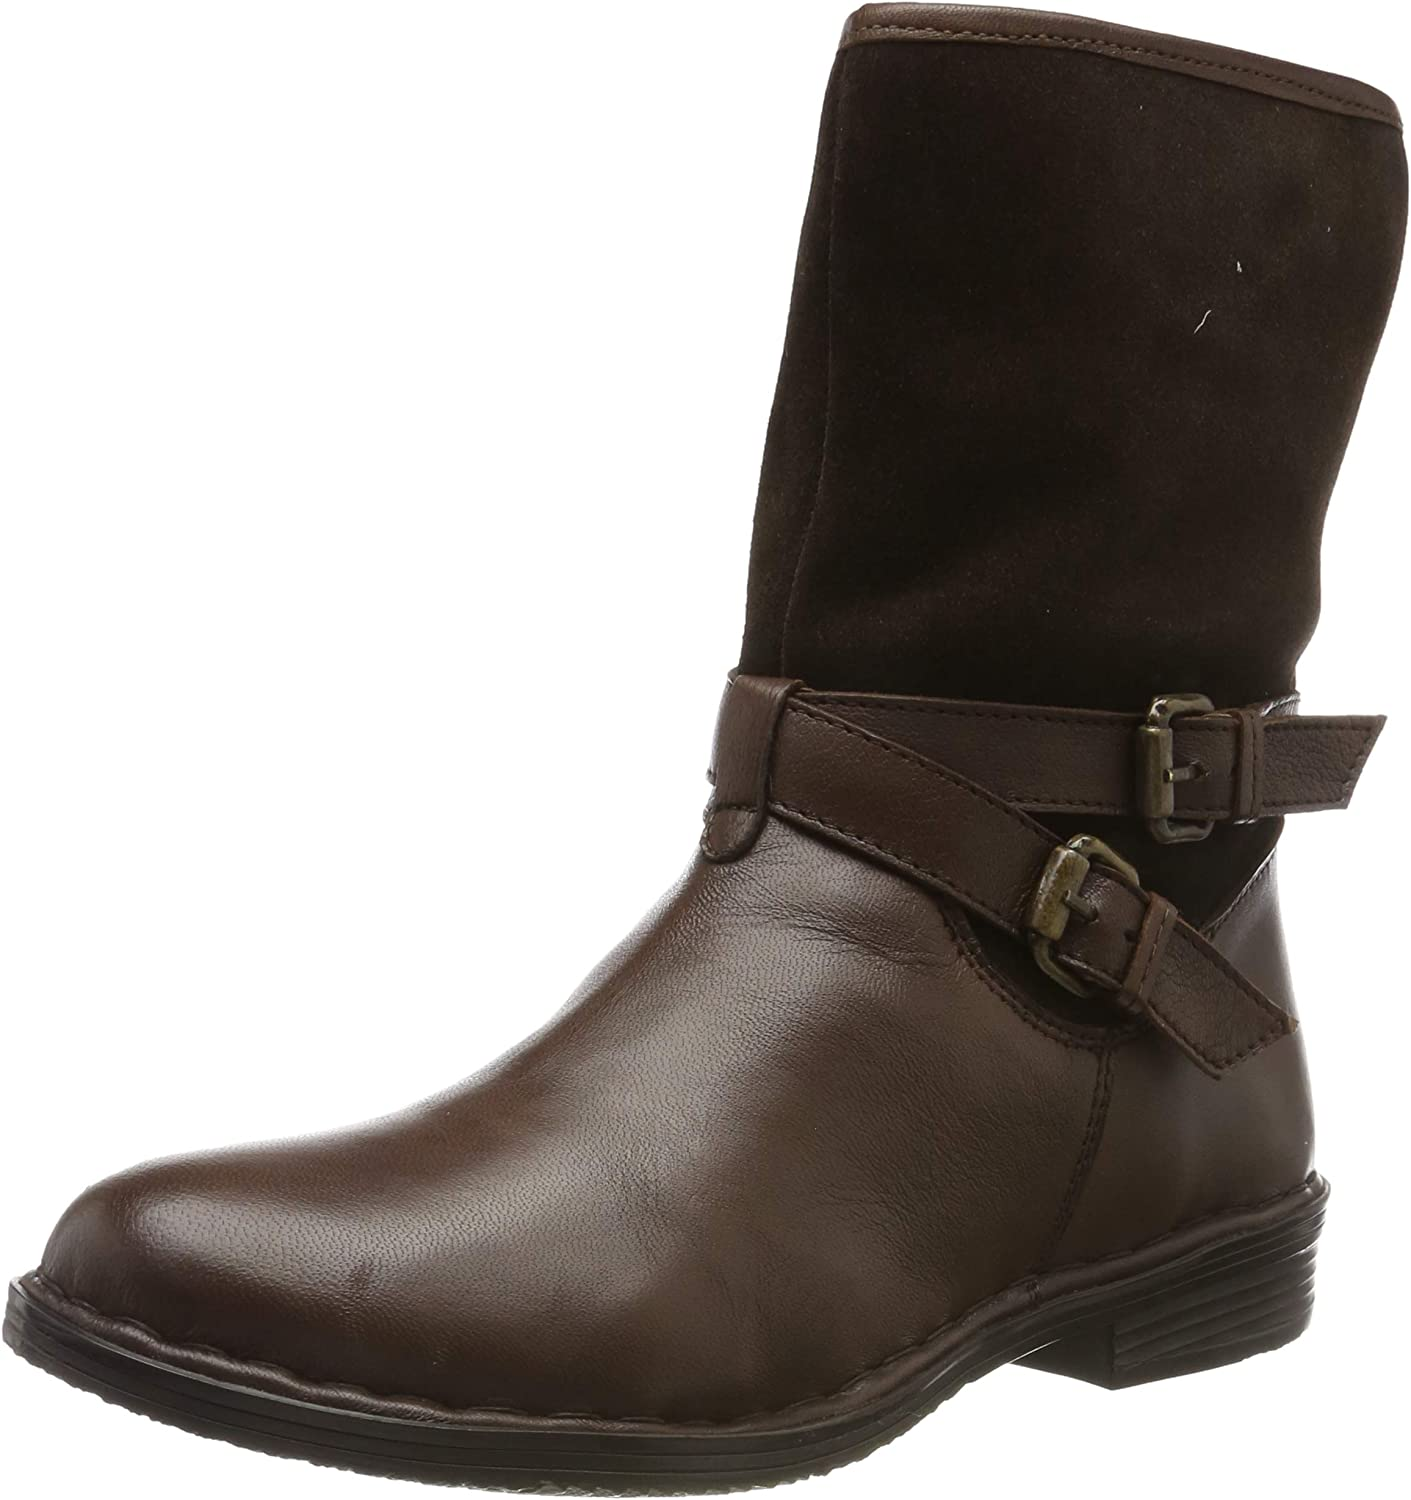 Lotus Women's Ankle Boots | Ankle \u0026 Bootie